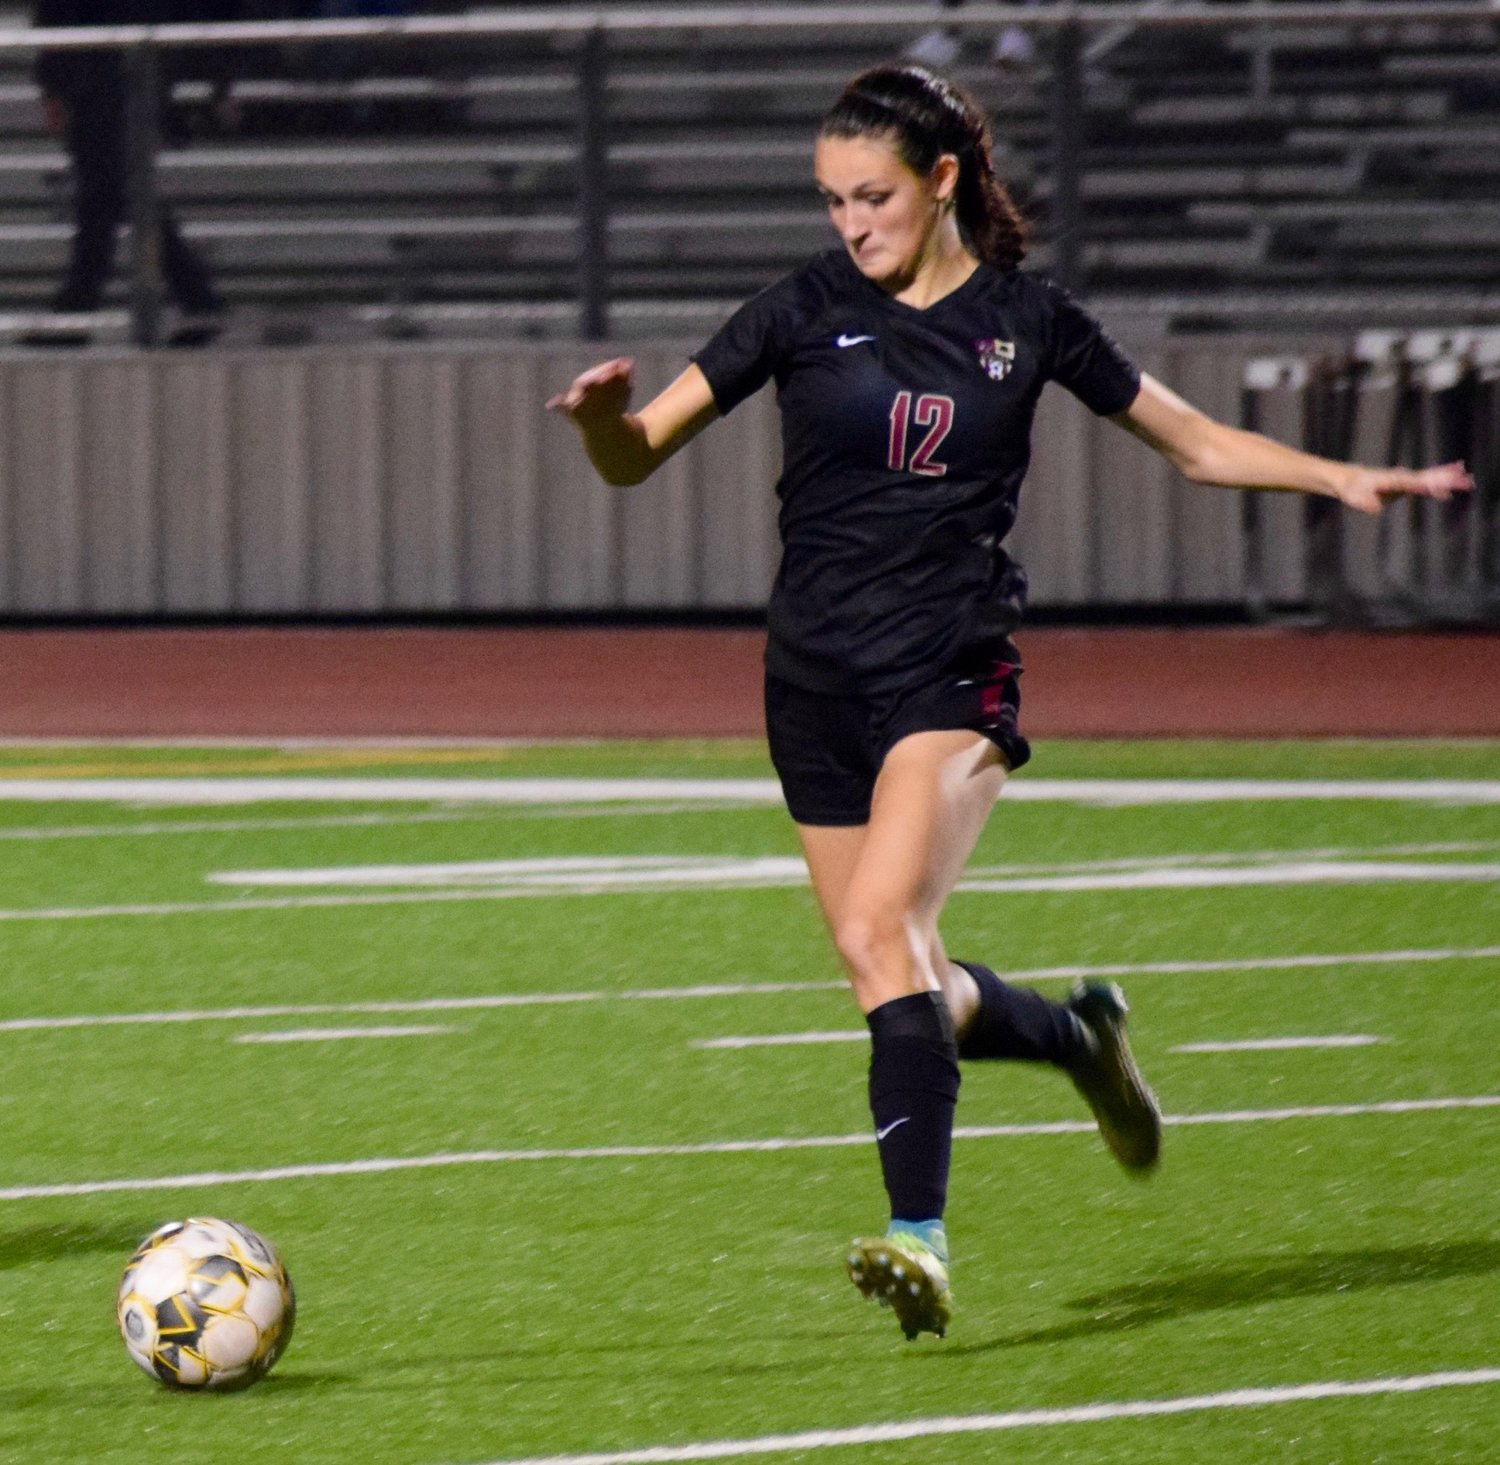 Alyssa Ashley and Rouse lost to Cedar Park 4-1 at home on Friday night.